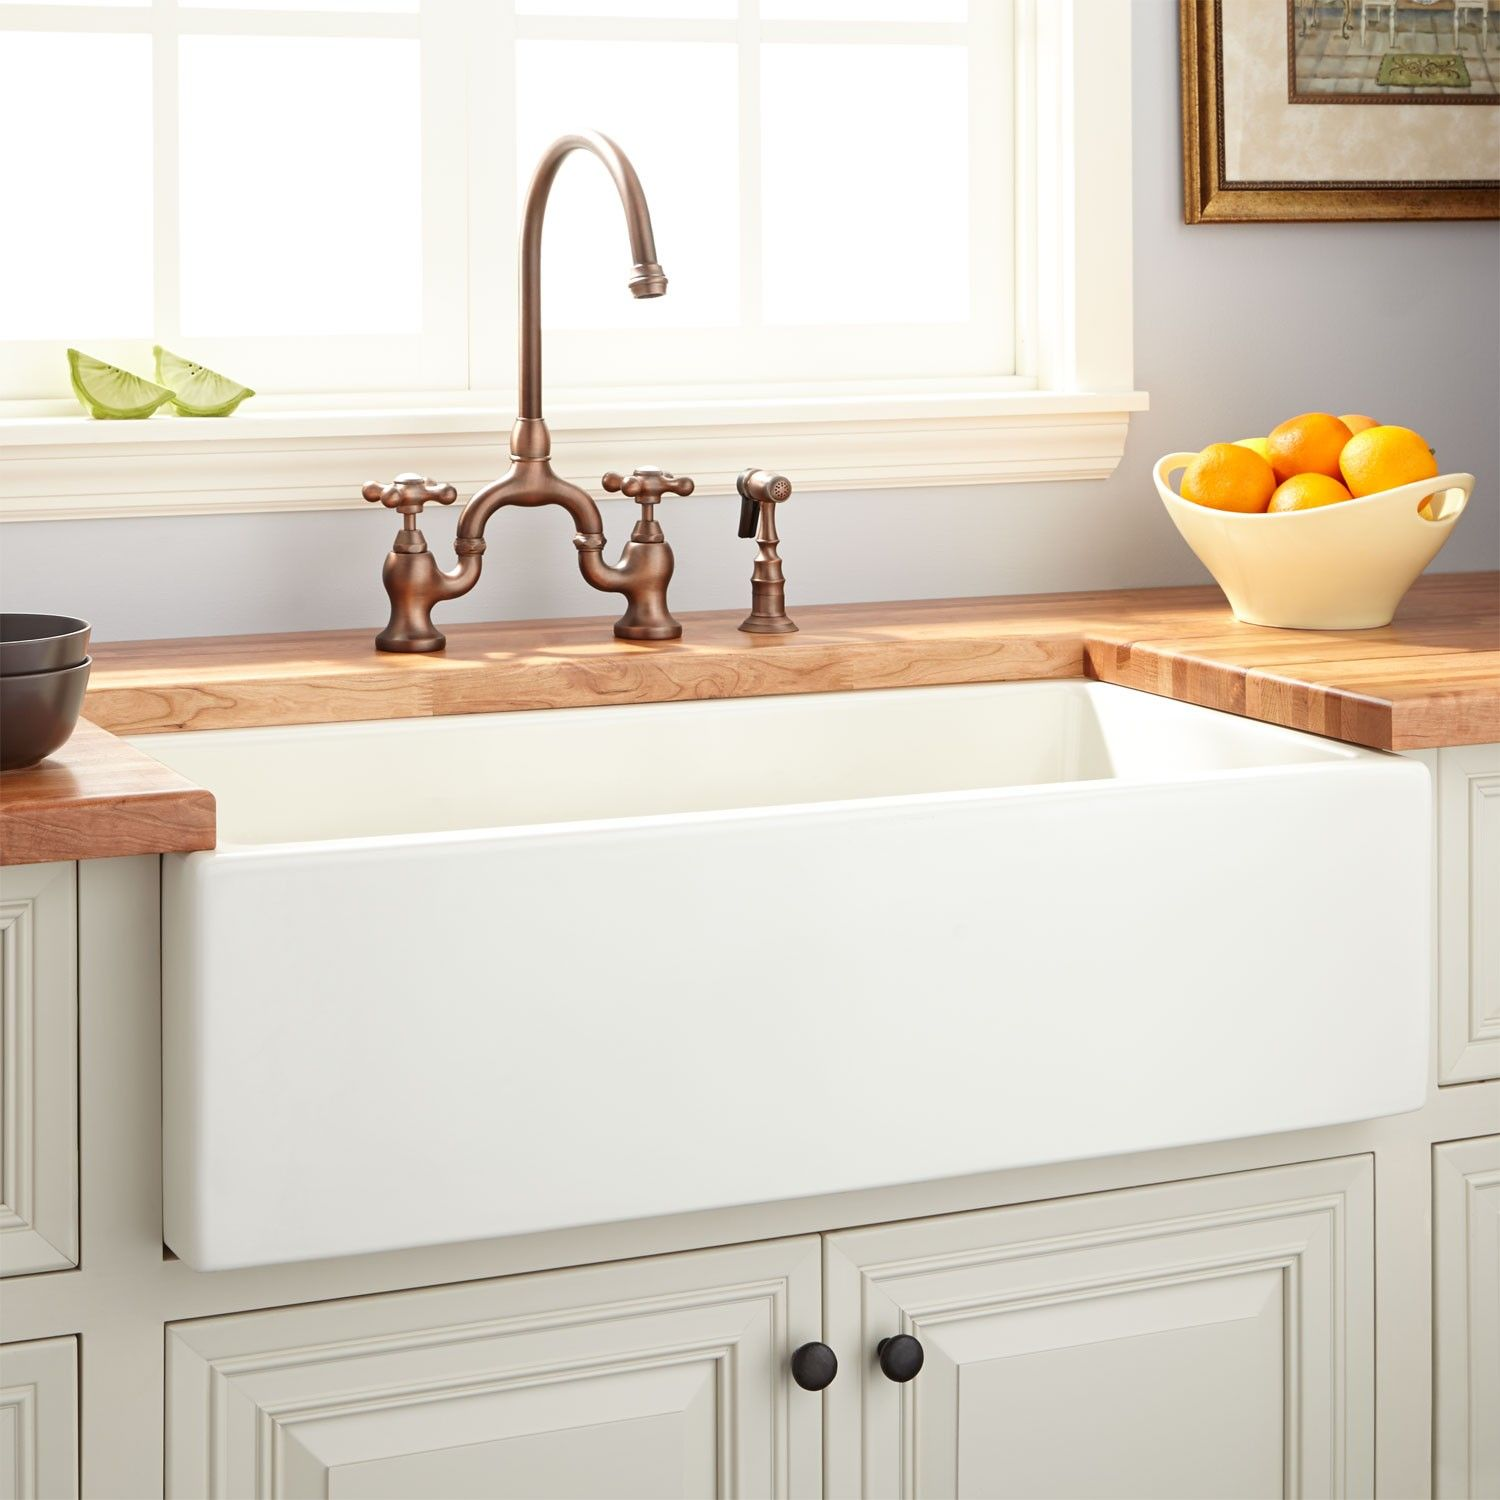 36 Inch Dorhester Fireclay Reversible Farmhouse Sink Smooth Apron White 1197 95 99 Wire Mesh Sc Farmhouse Sink Fireclay Farmhouse Sink White Farmhouse Sink